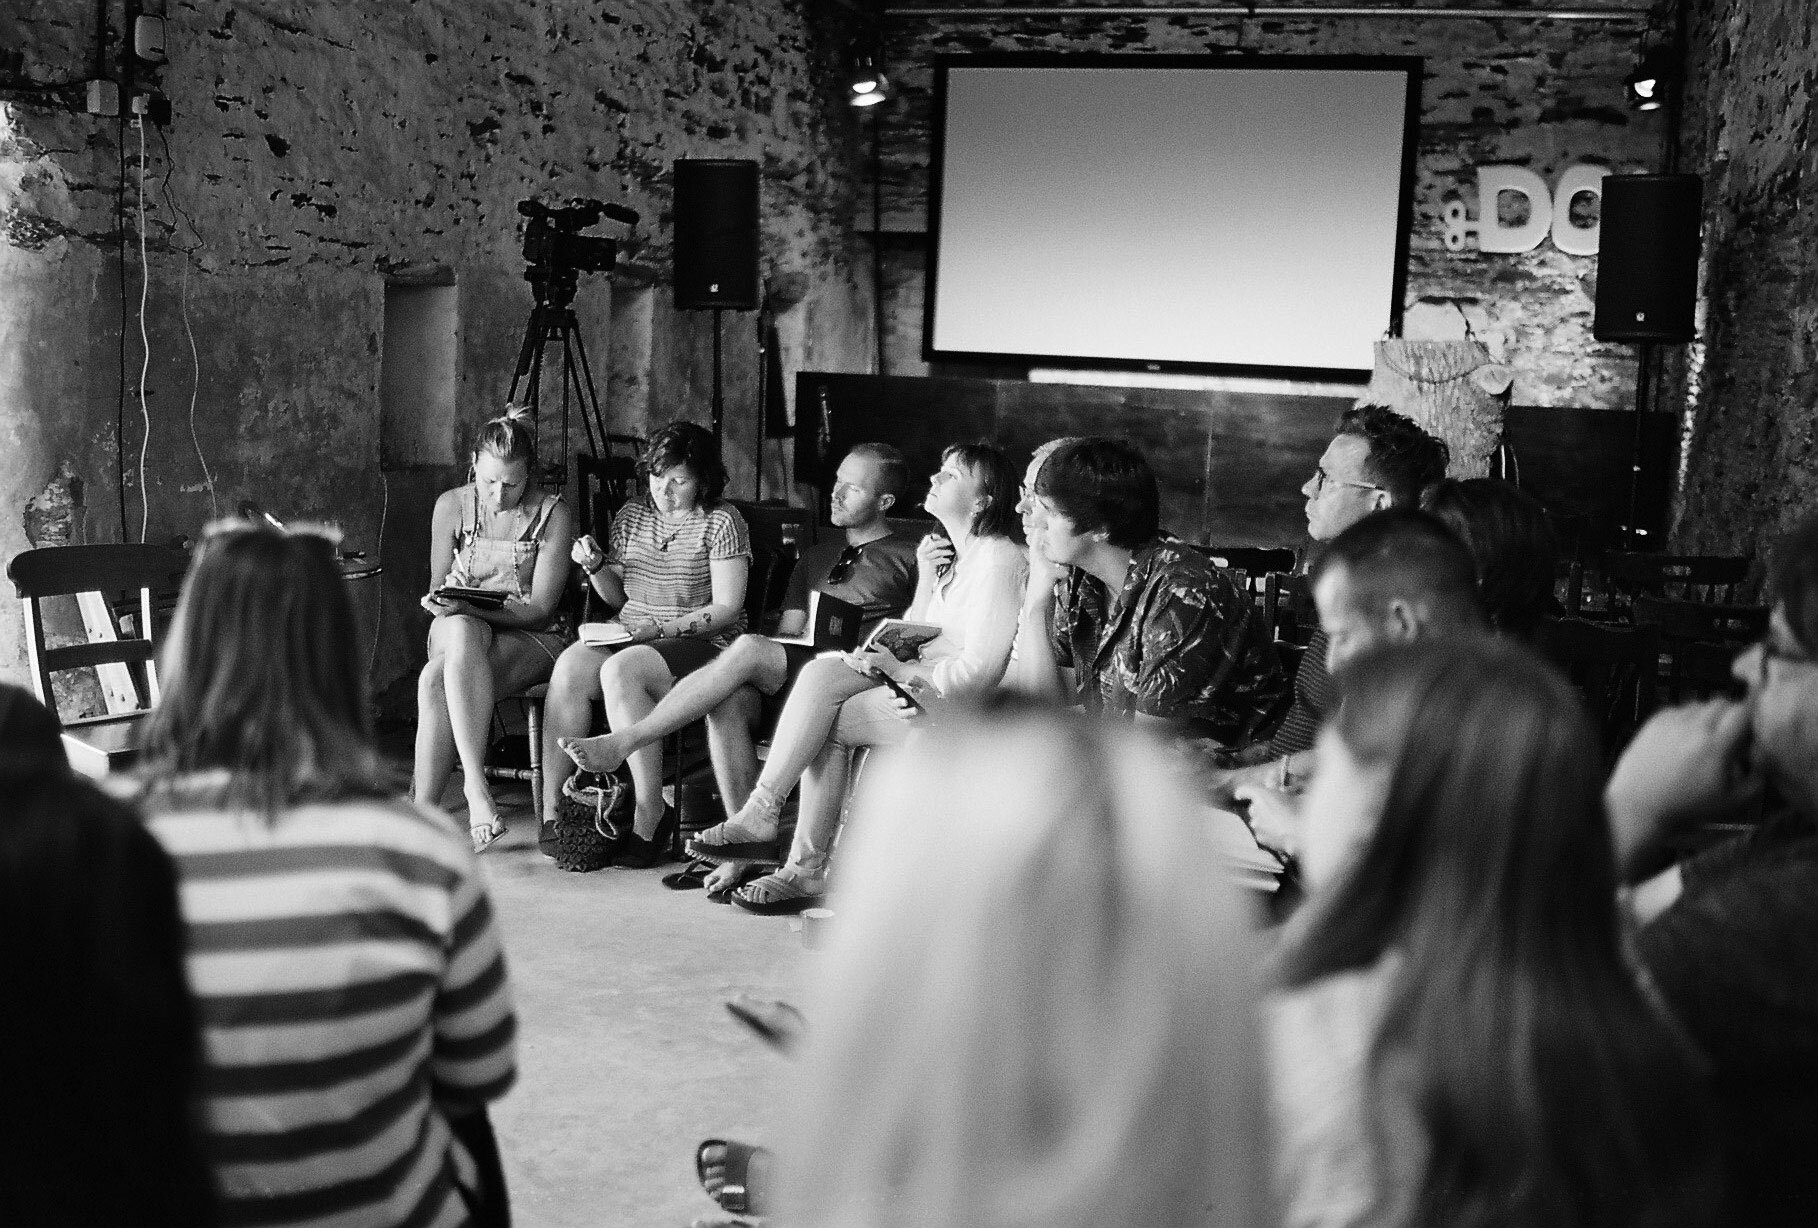 Find out how our workshops can help you, what they will teach you and when they are happening. Presented by the people we trust.